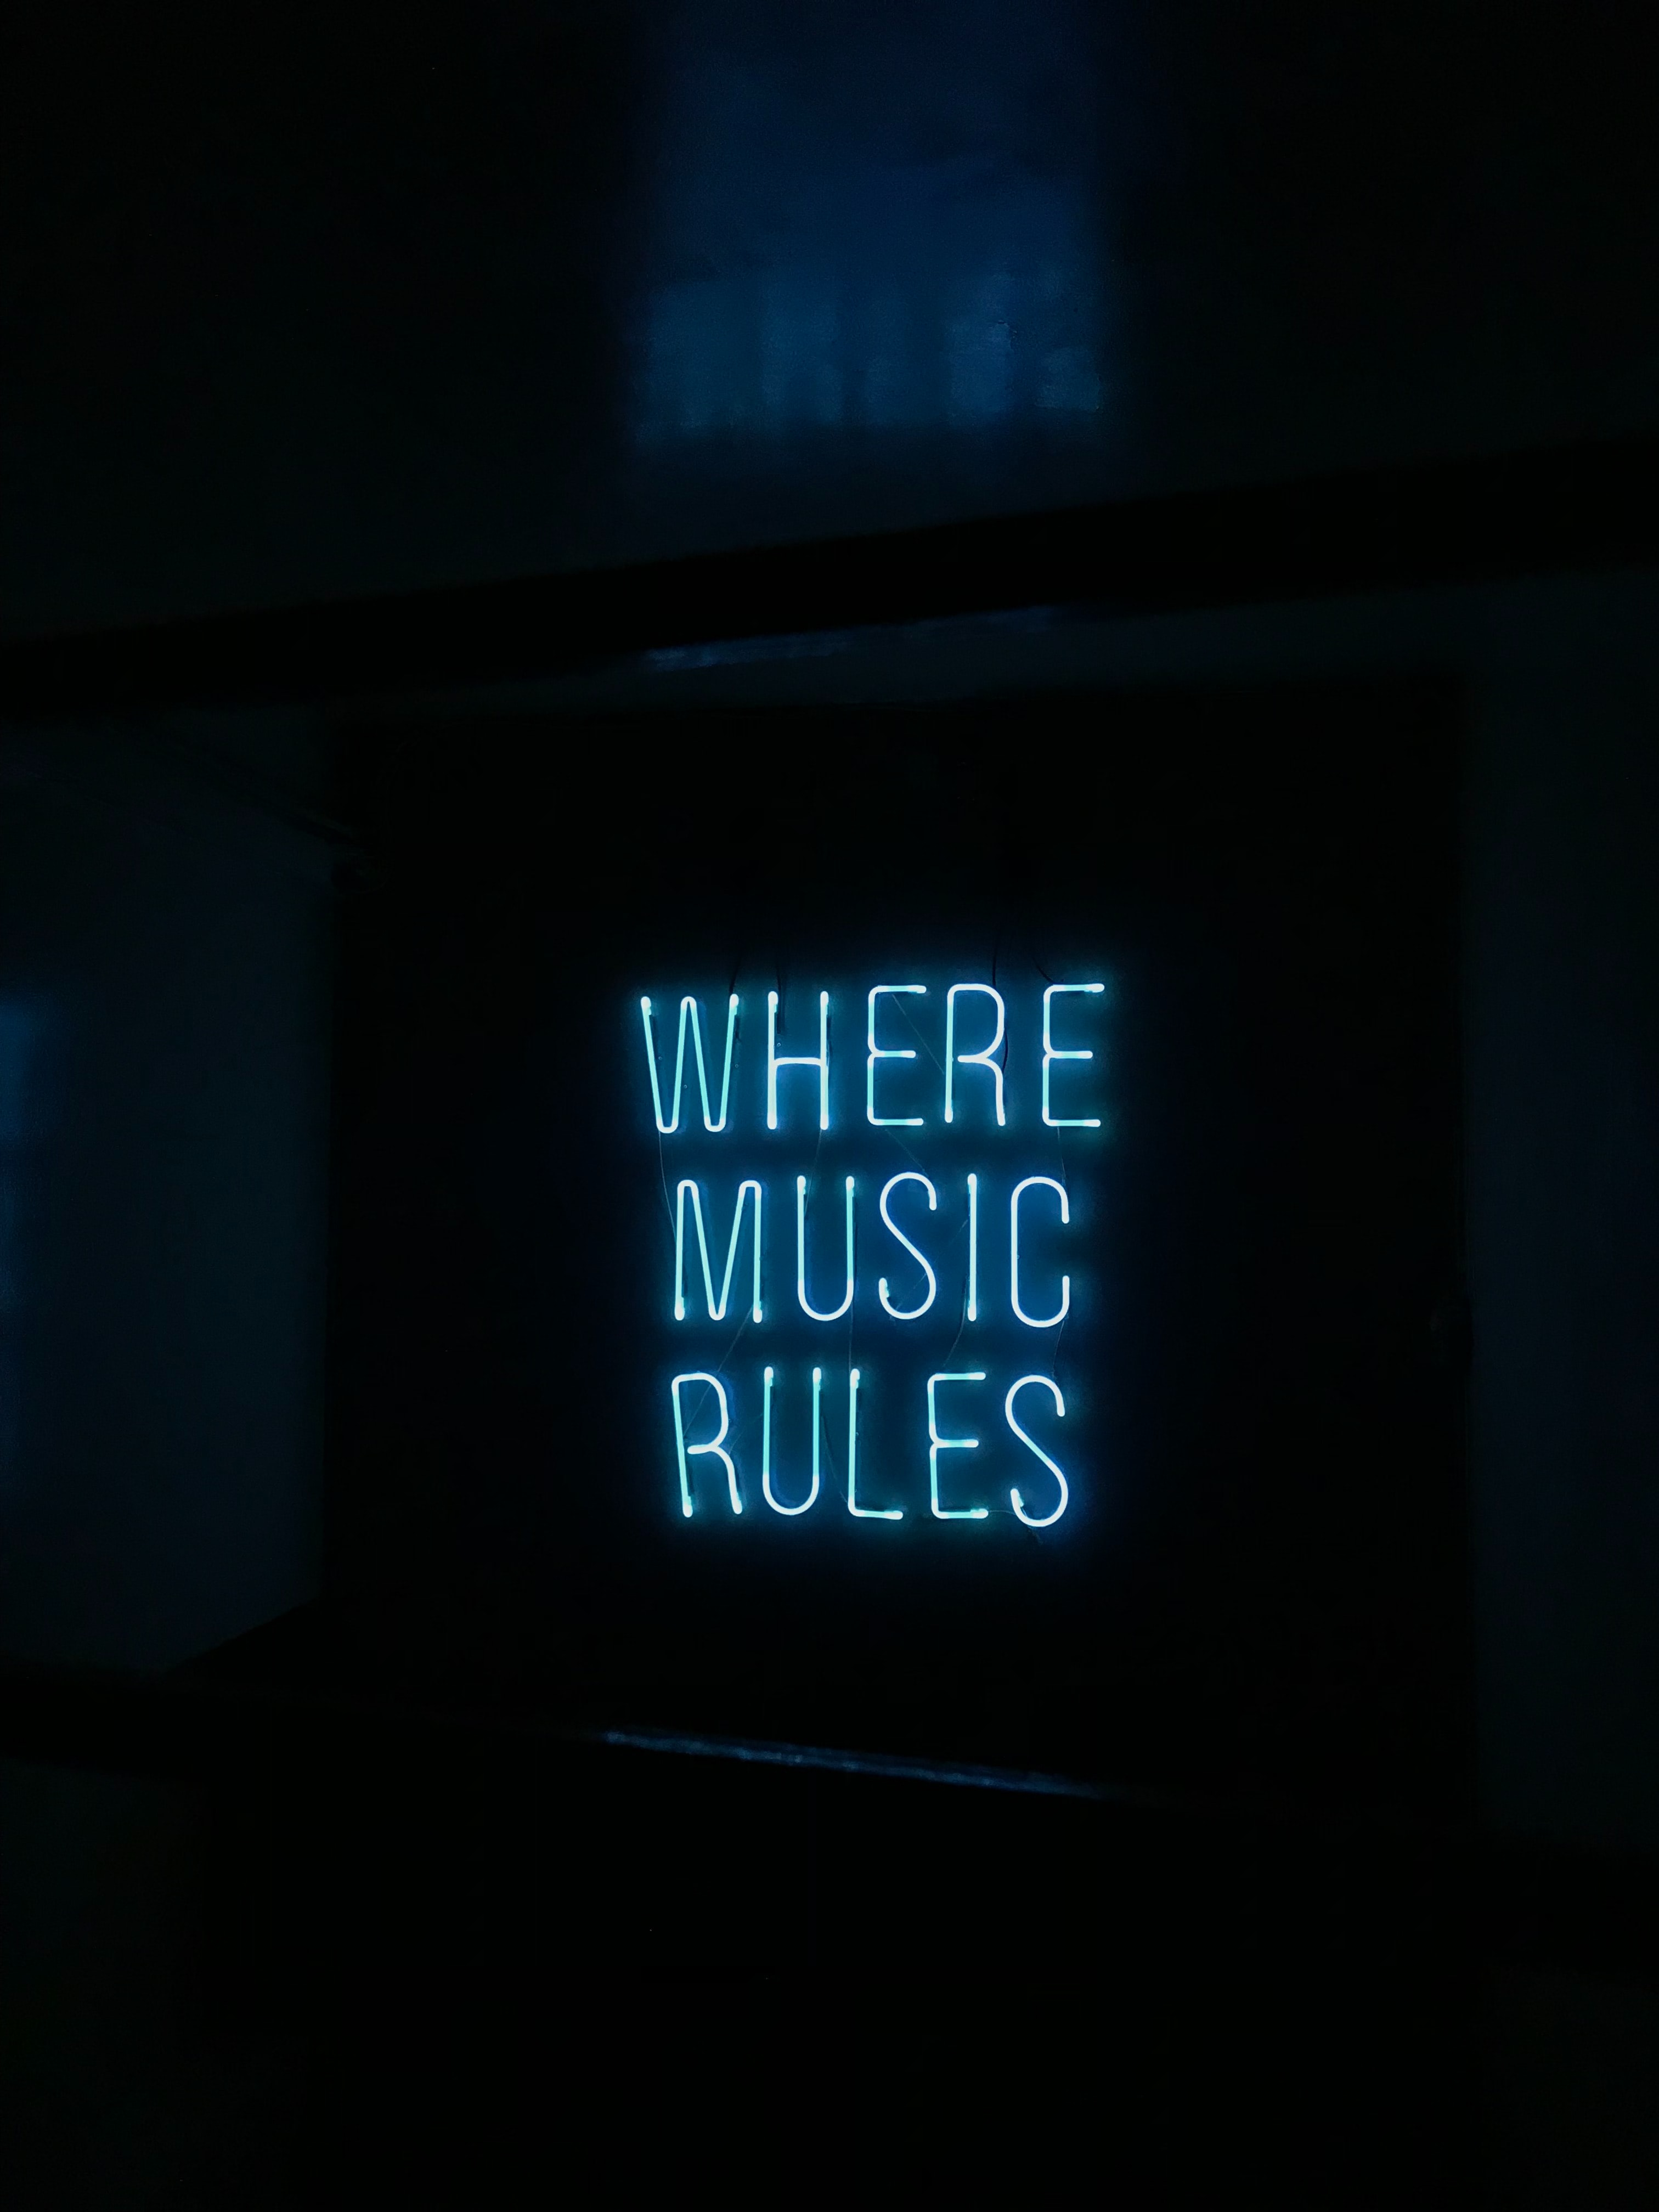 Where music rules neon sign